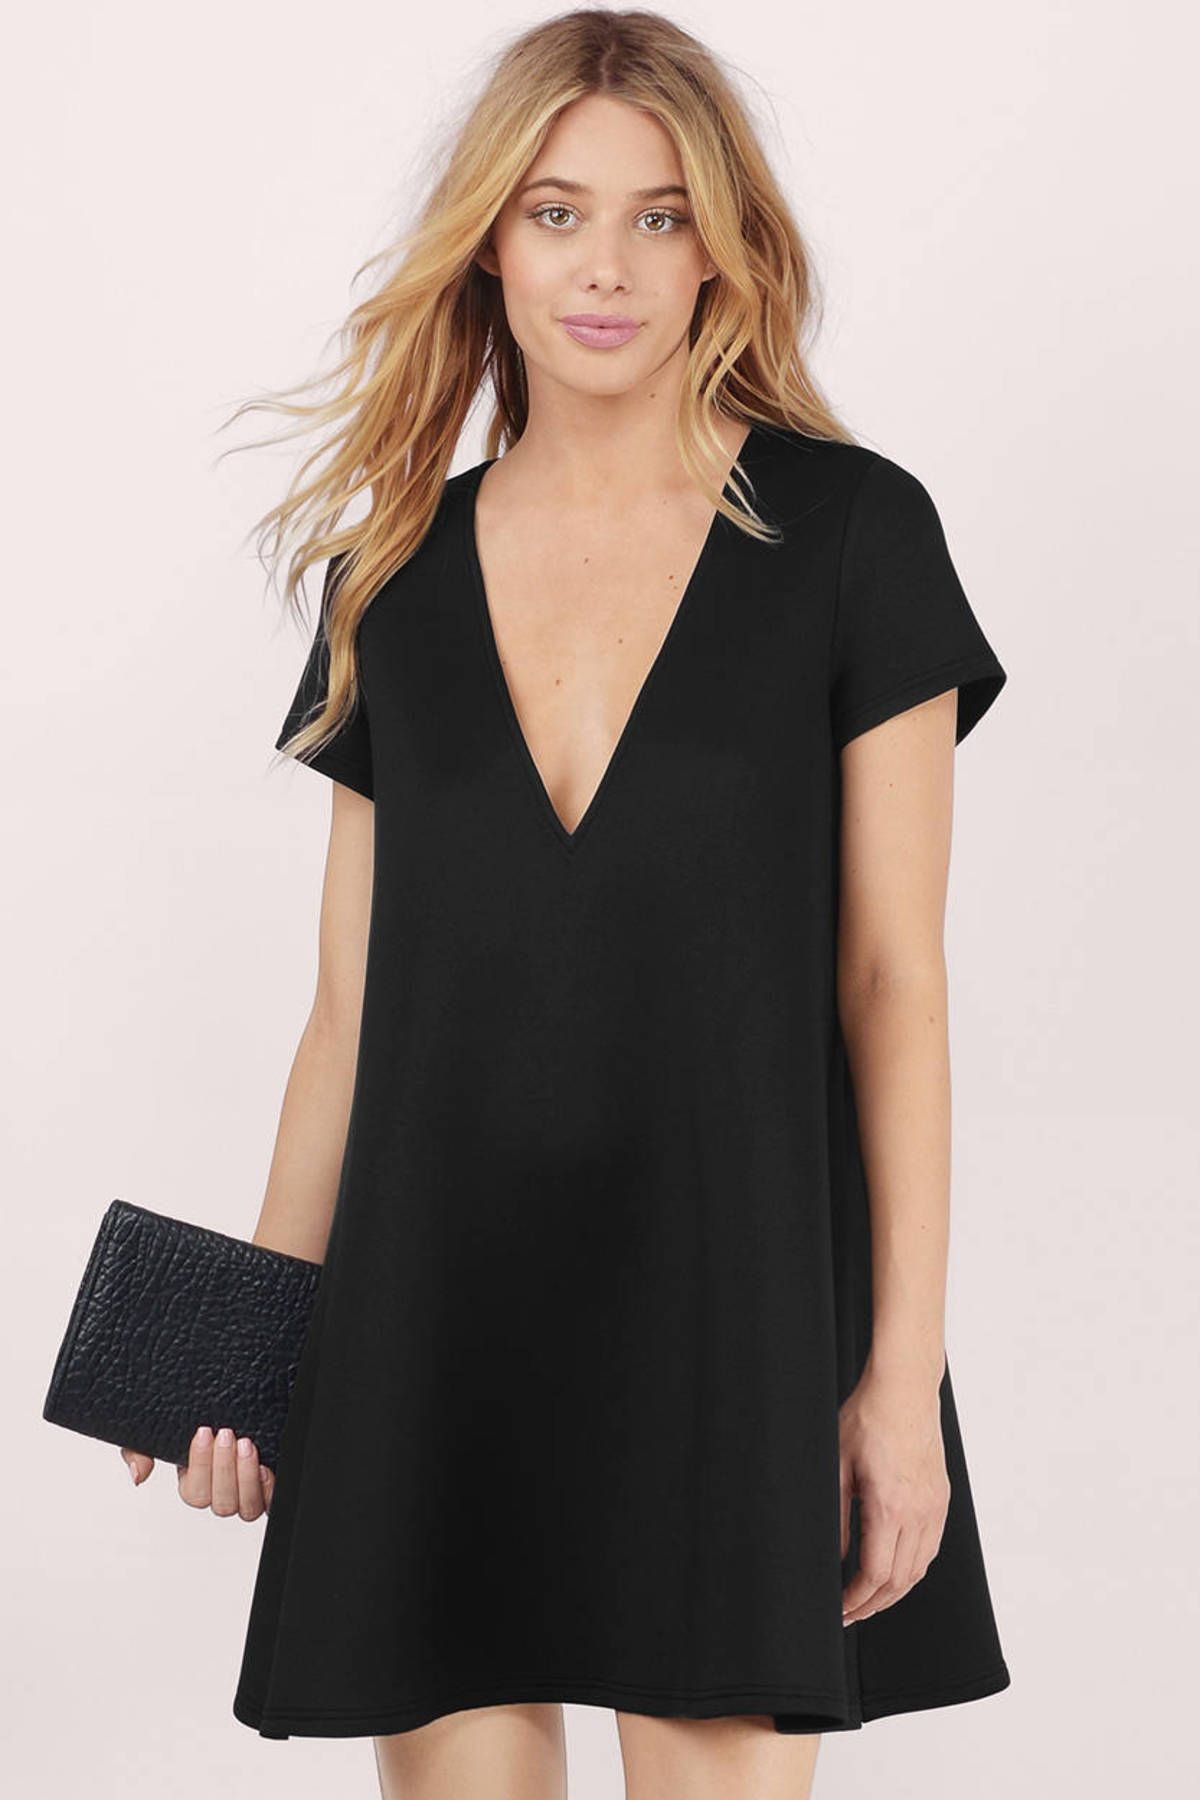 a1cfb2da12 Short sleeve shift dress with deep plunge V neckline. Wear with chic high  heels for a casual evening out. Available in black and cobalt.